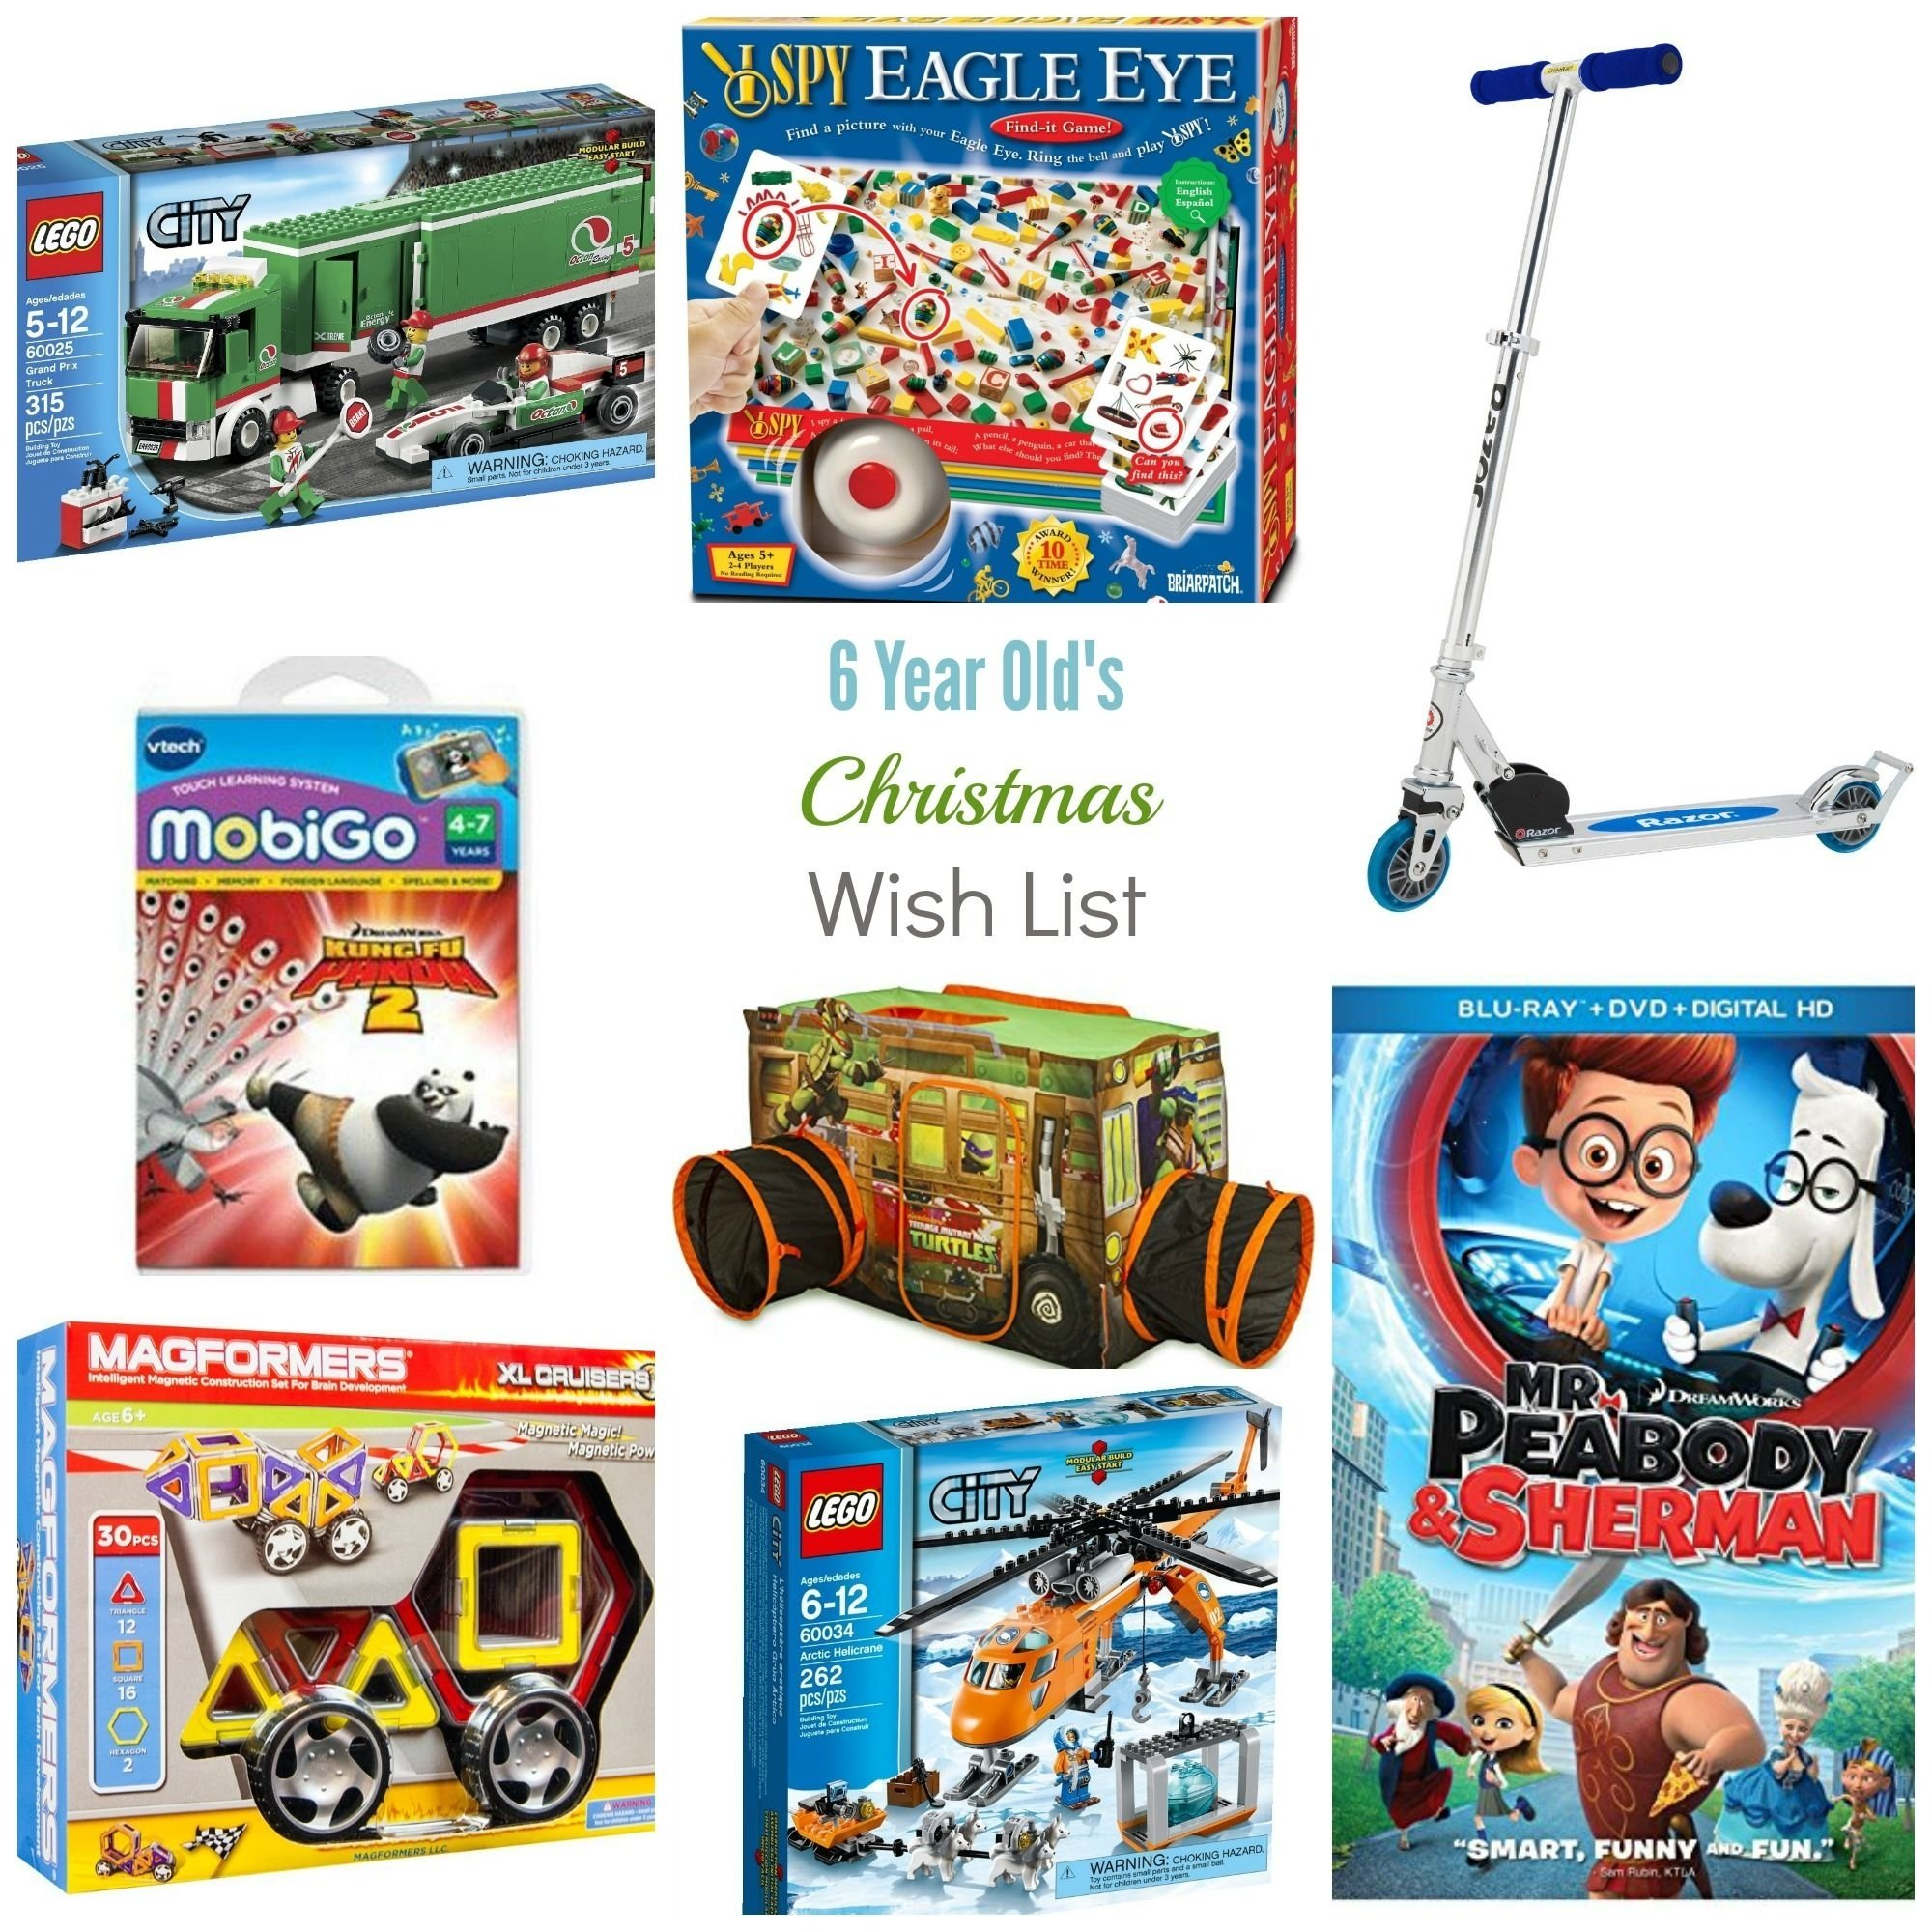 10 Fashionable Gift Ideas For A 7 Year Old Boy christmas wish list 6 year old boy legos ninja turtles and gift 16 2020